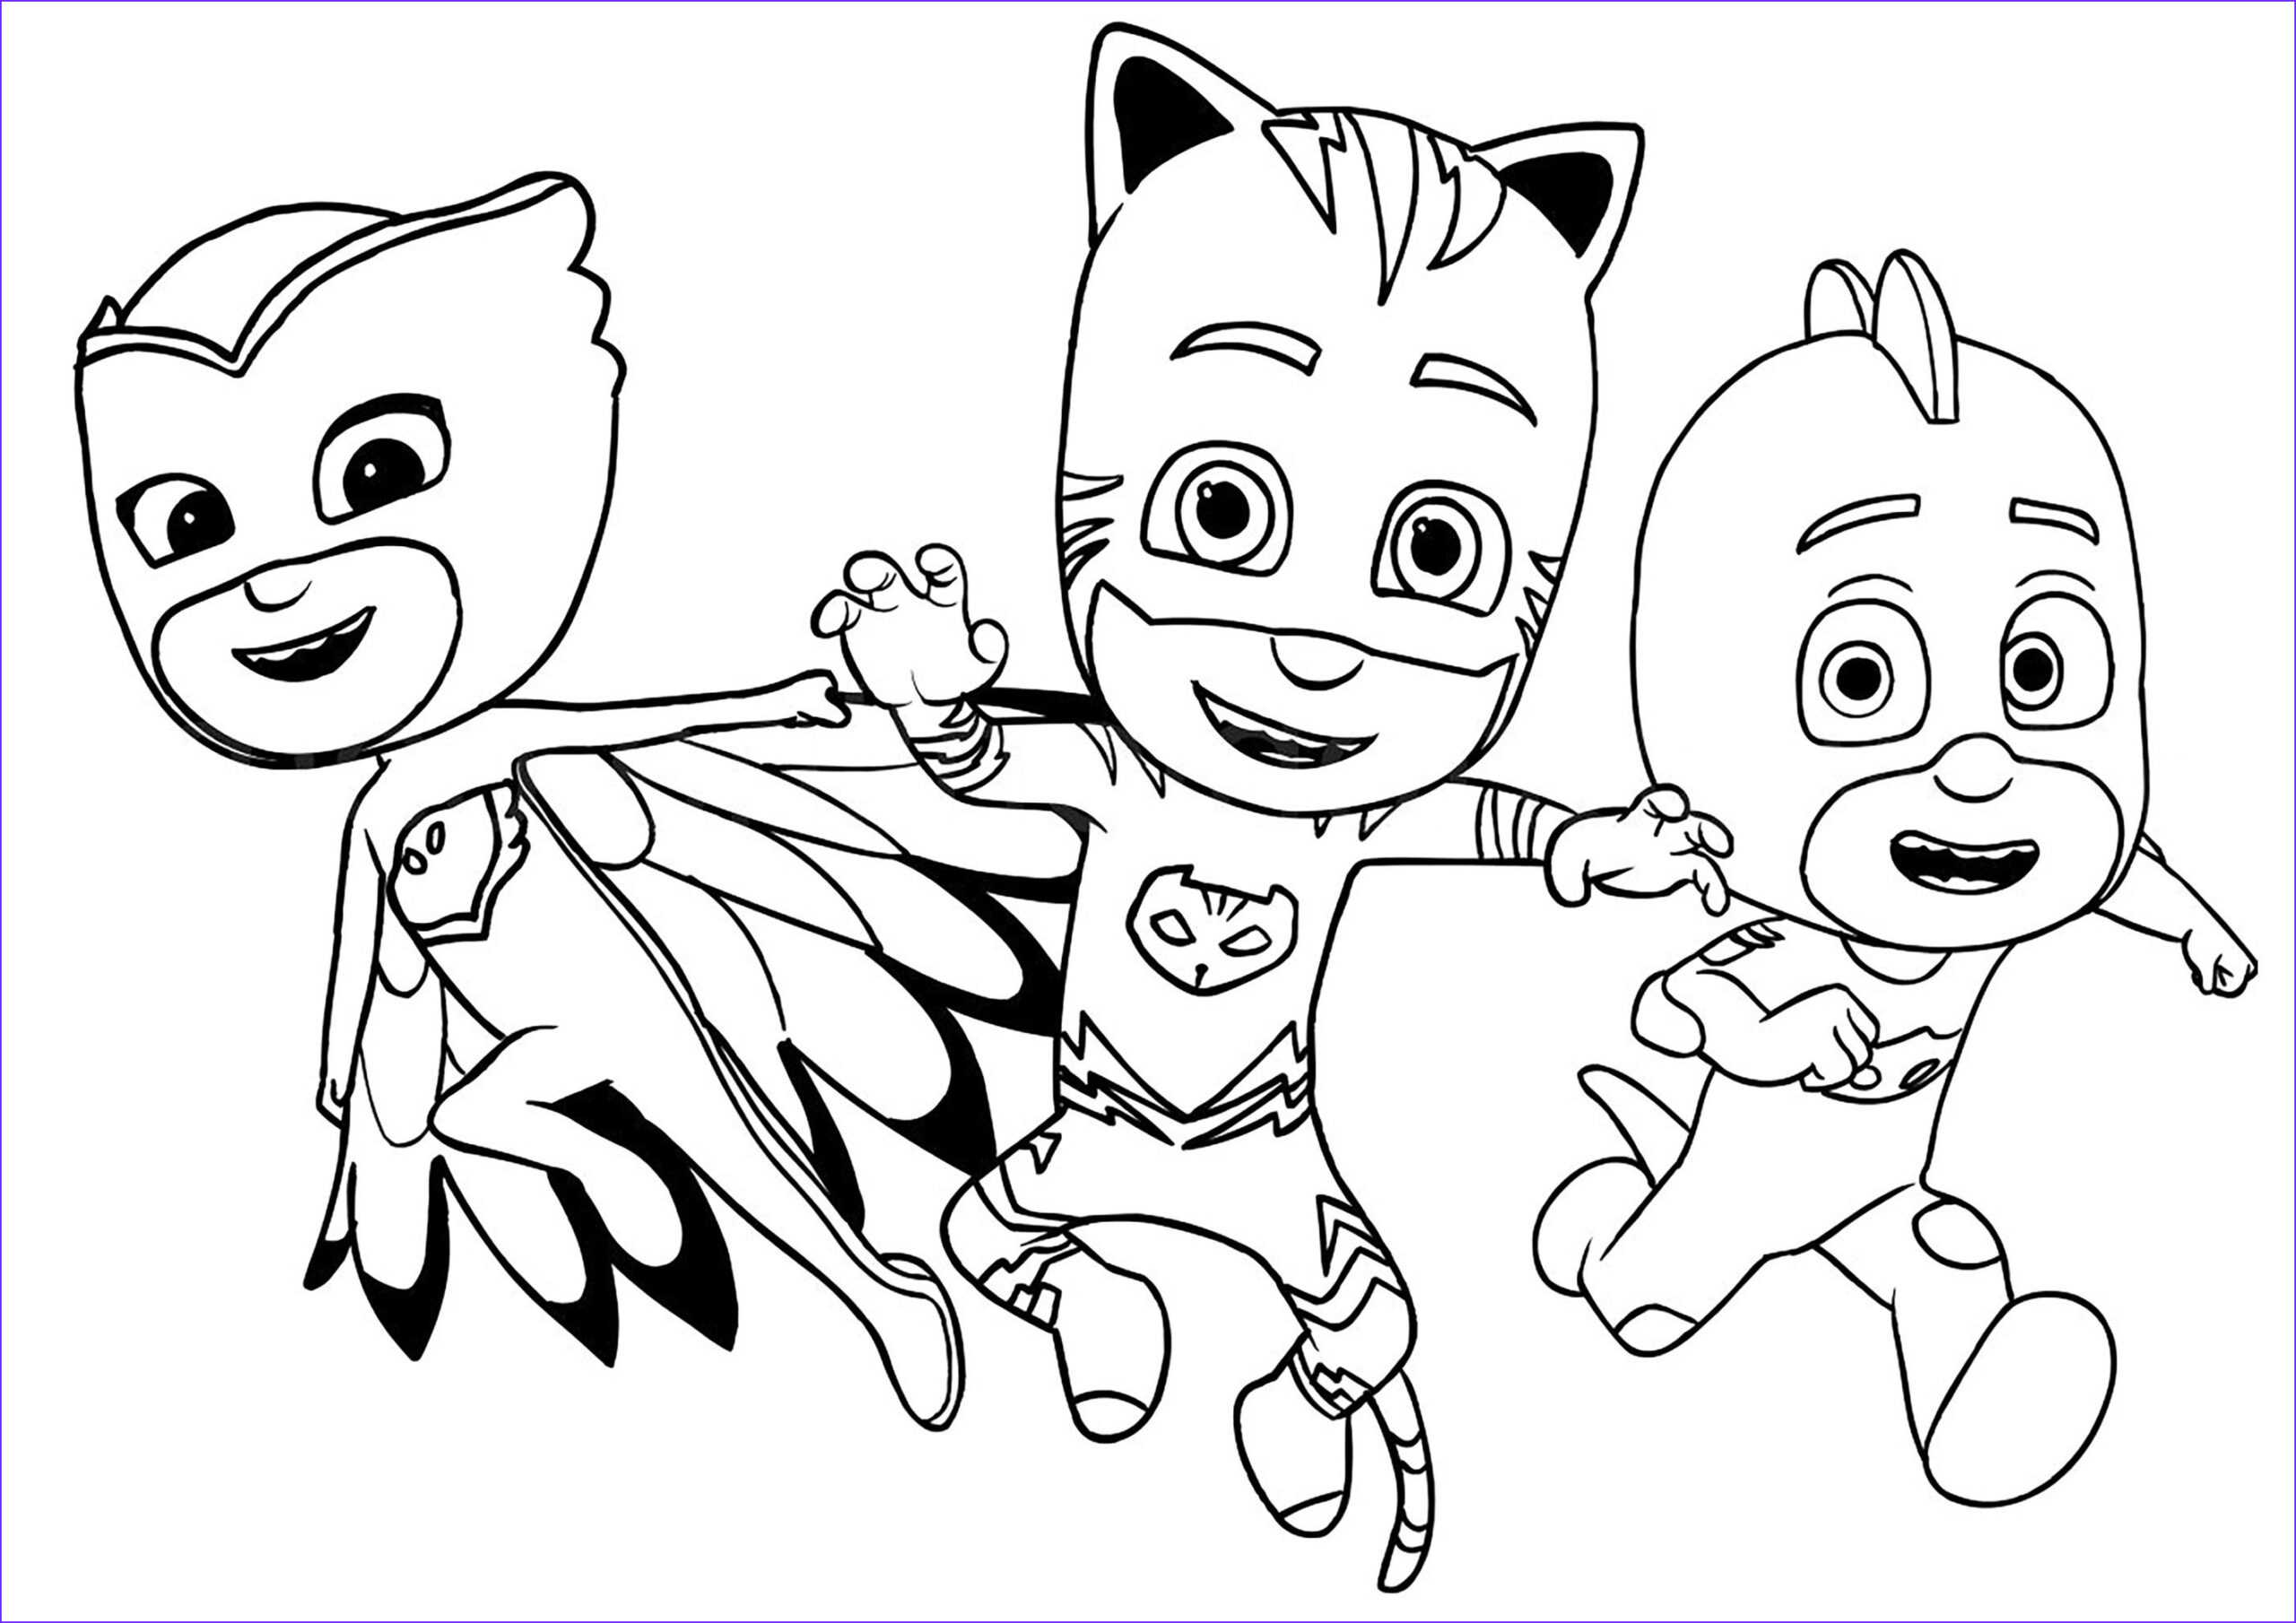 Pj Masks Coloring Page Inspirational Gallery Free Pj Masks Coloring Page to From the Gallery